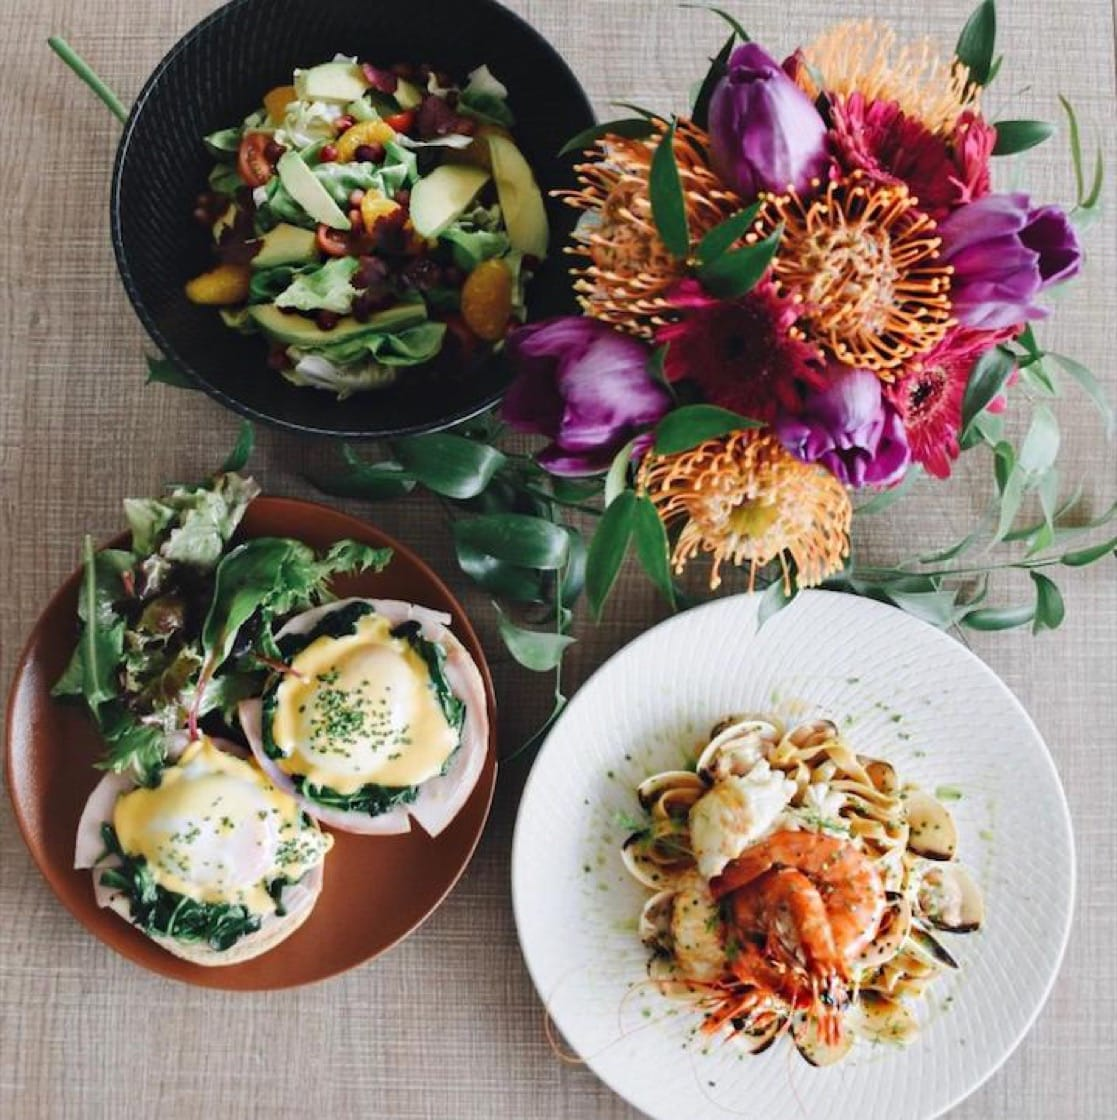 Mum can take home a pretty bouquet after brunching at The Summerhouse Dining Room. (Credit: The Summerhouse)